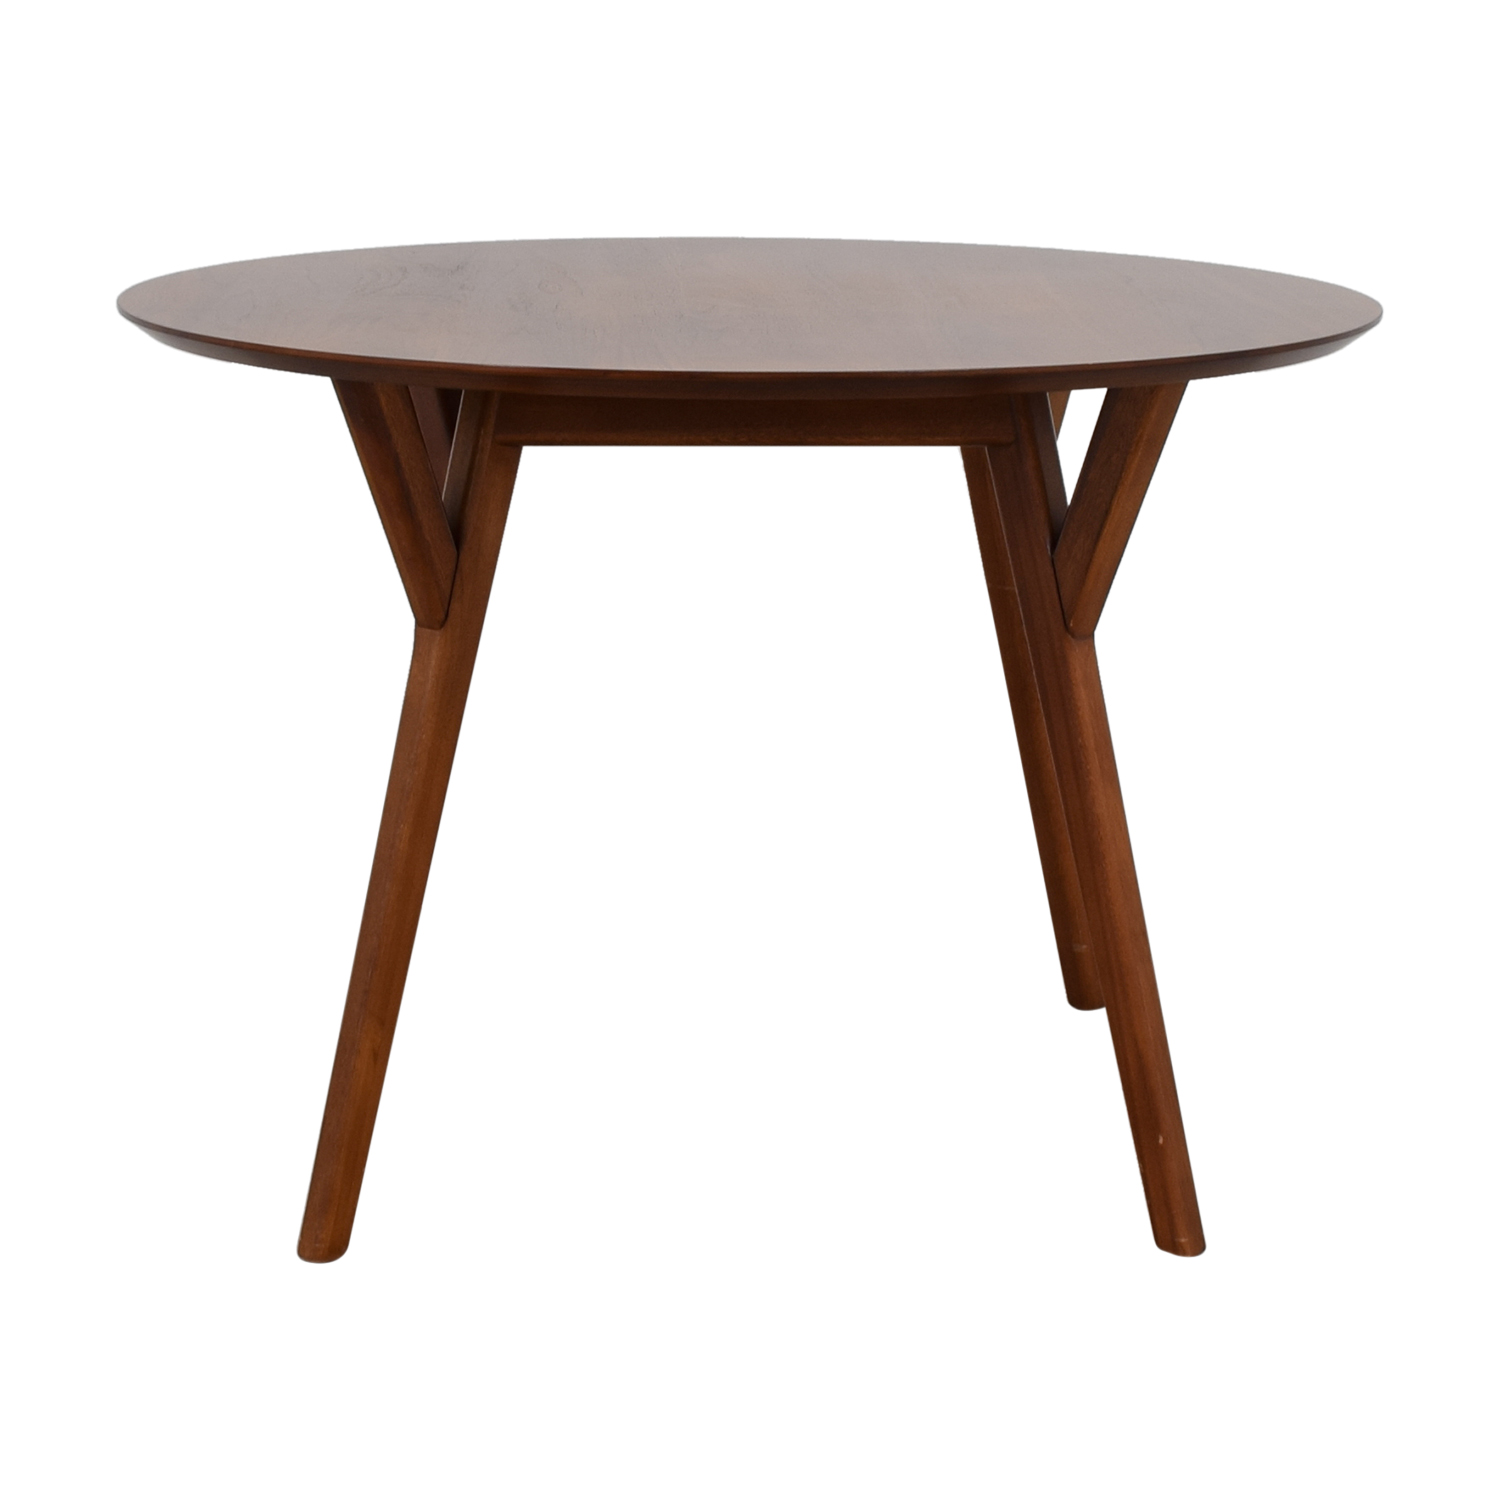 shop West Elm West Elm Mid-Century Walnut Round Dining Table online